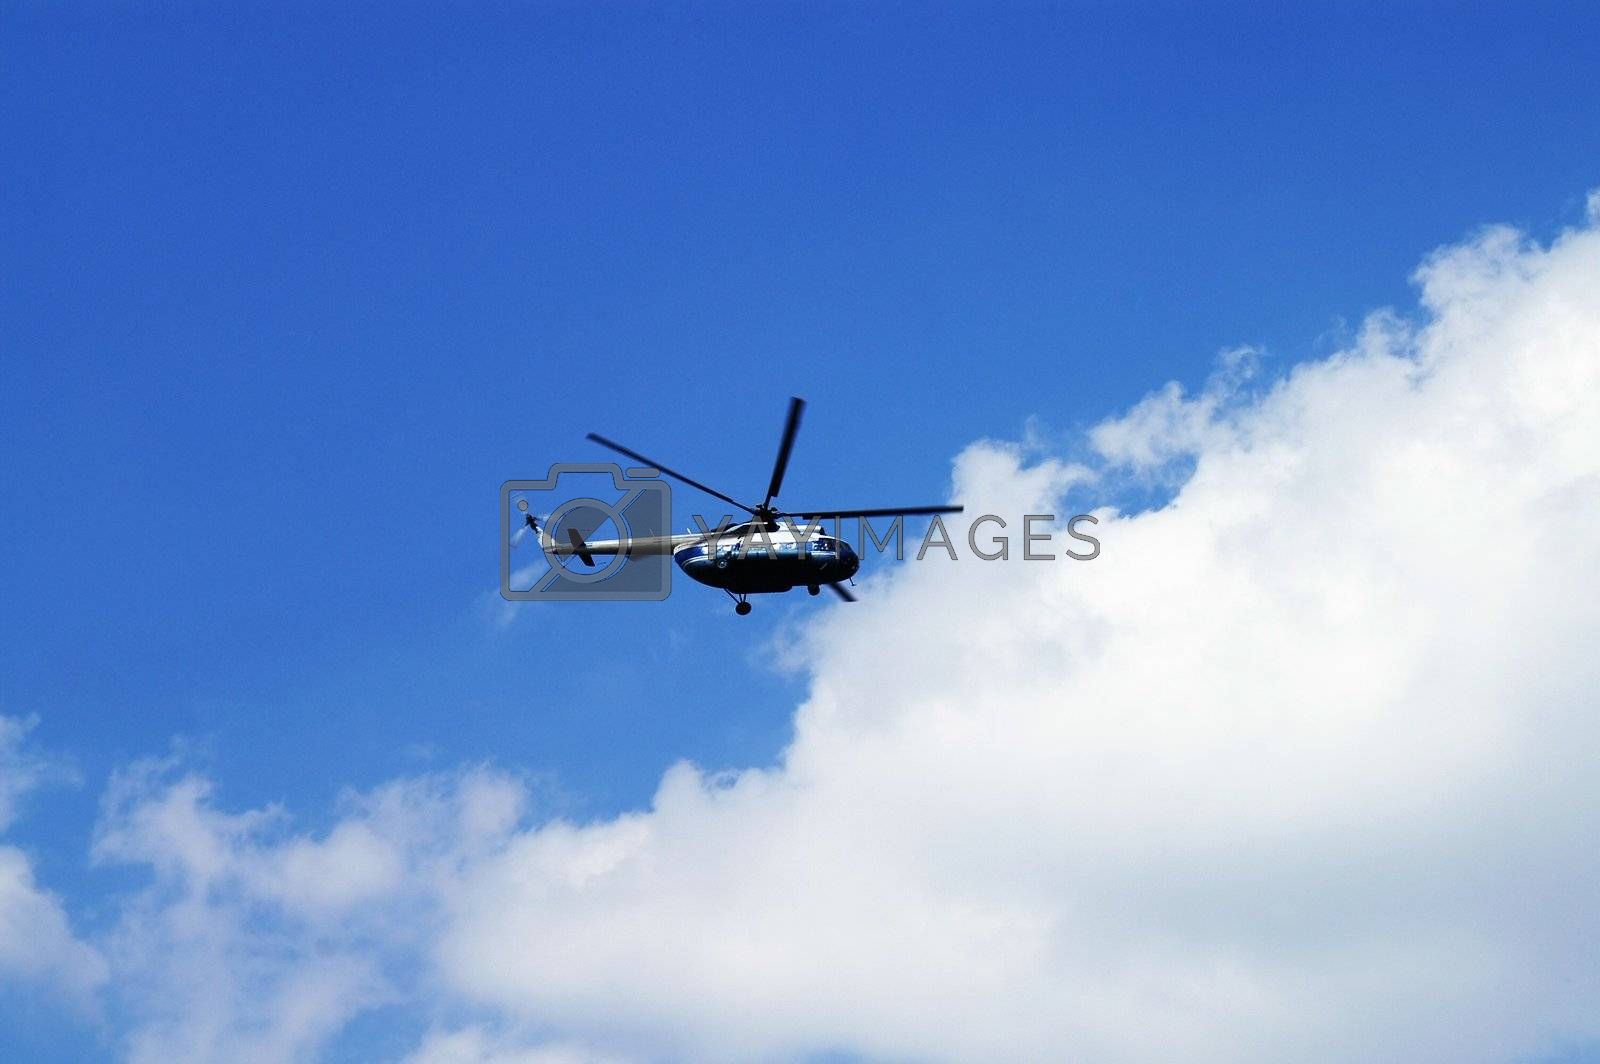 Civil Helicopter in Cloudy Skies